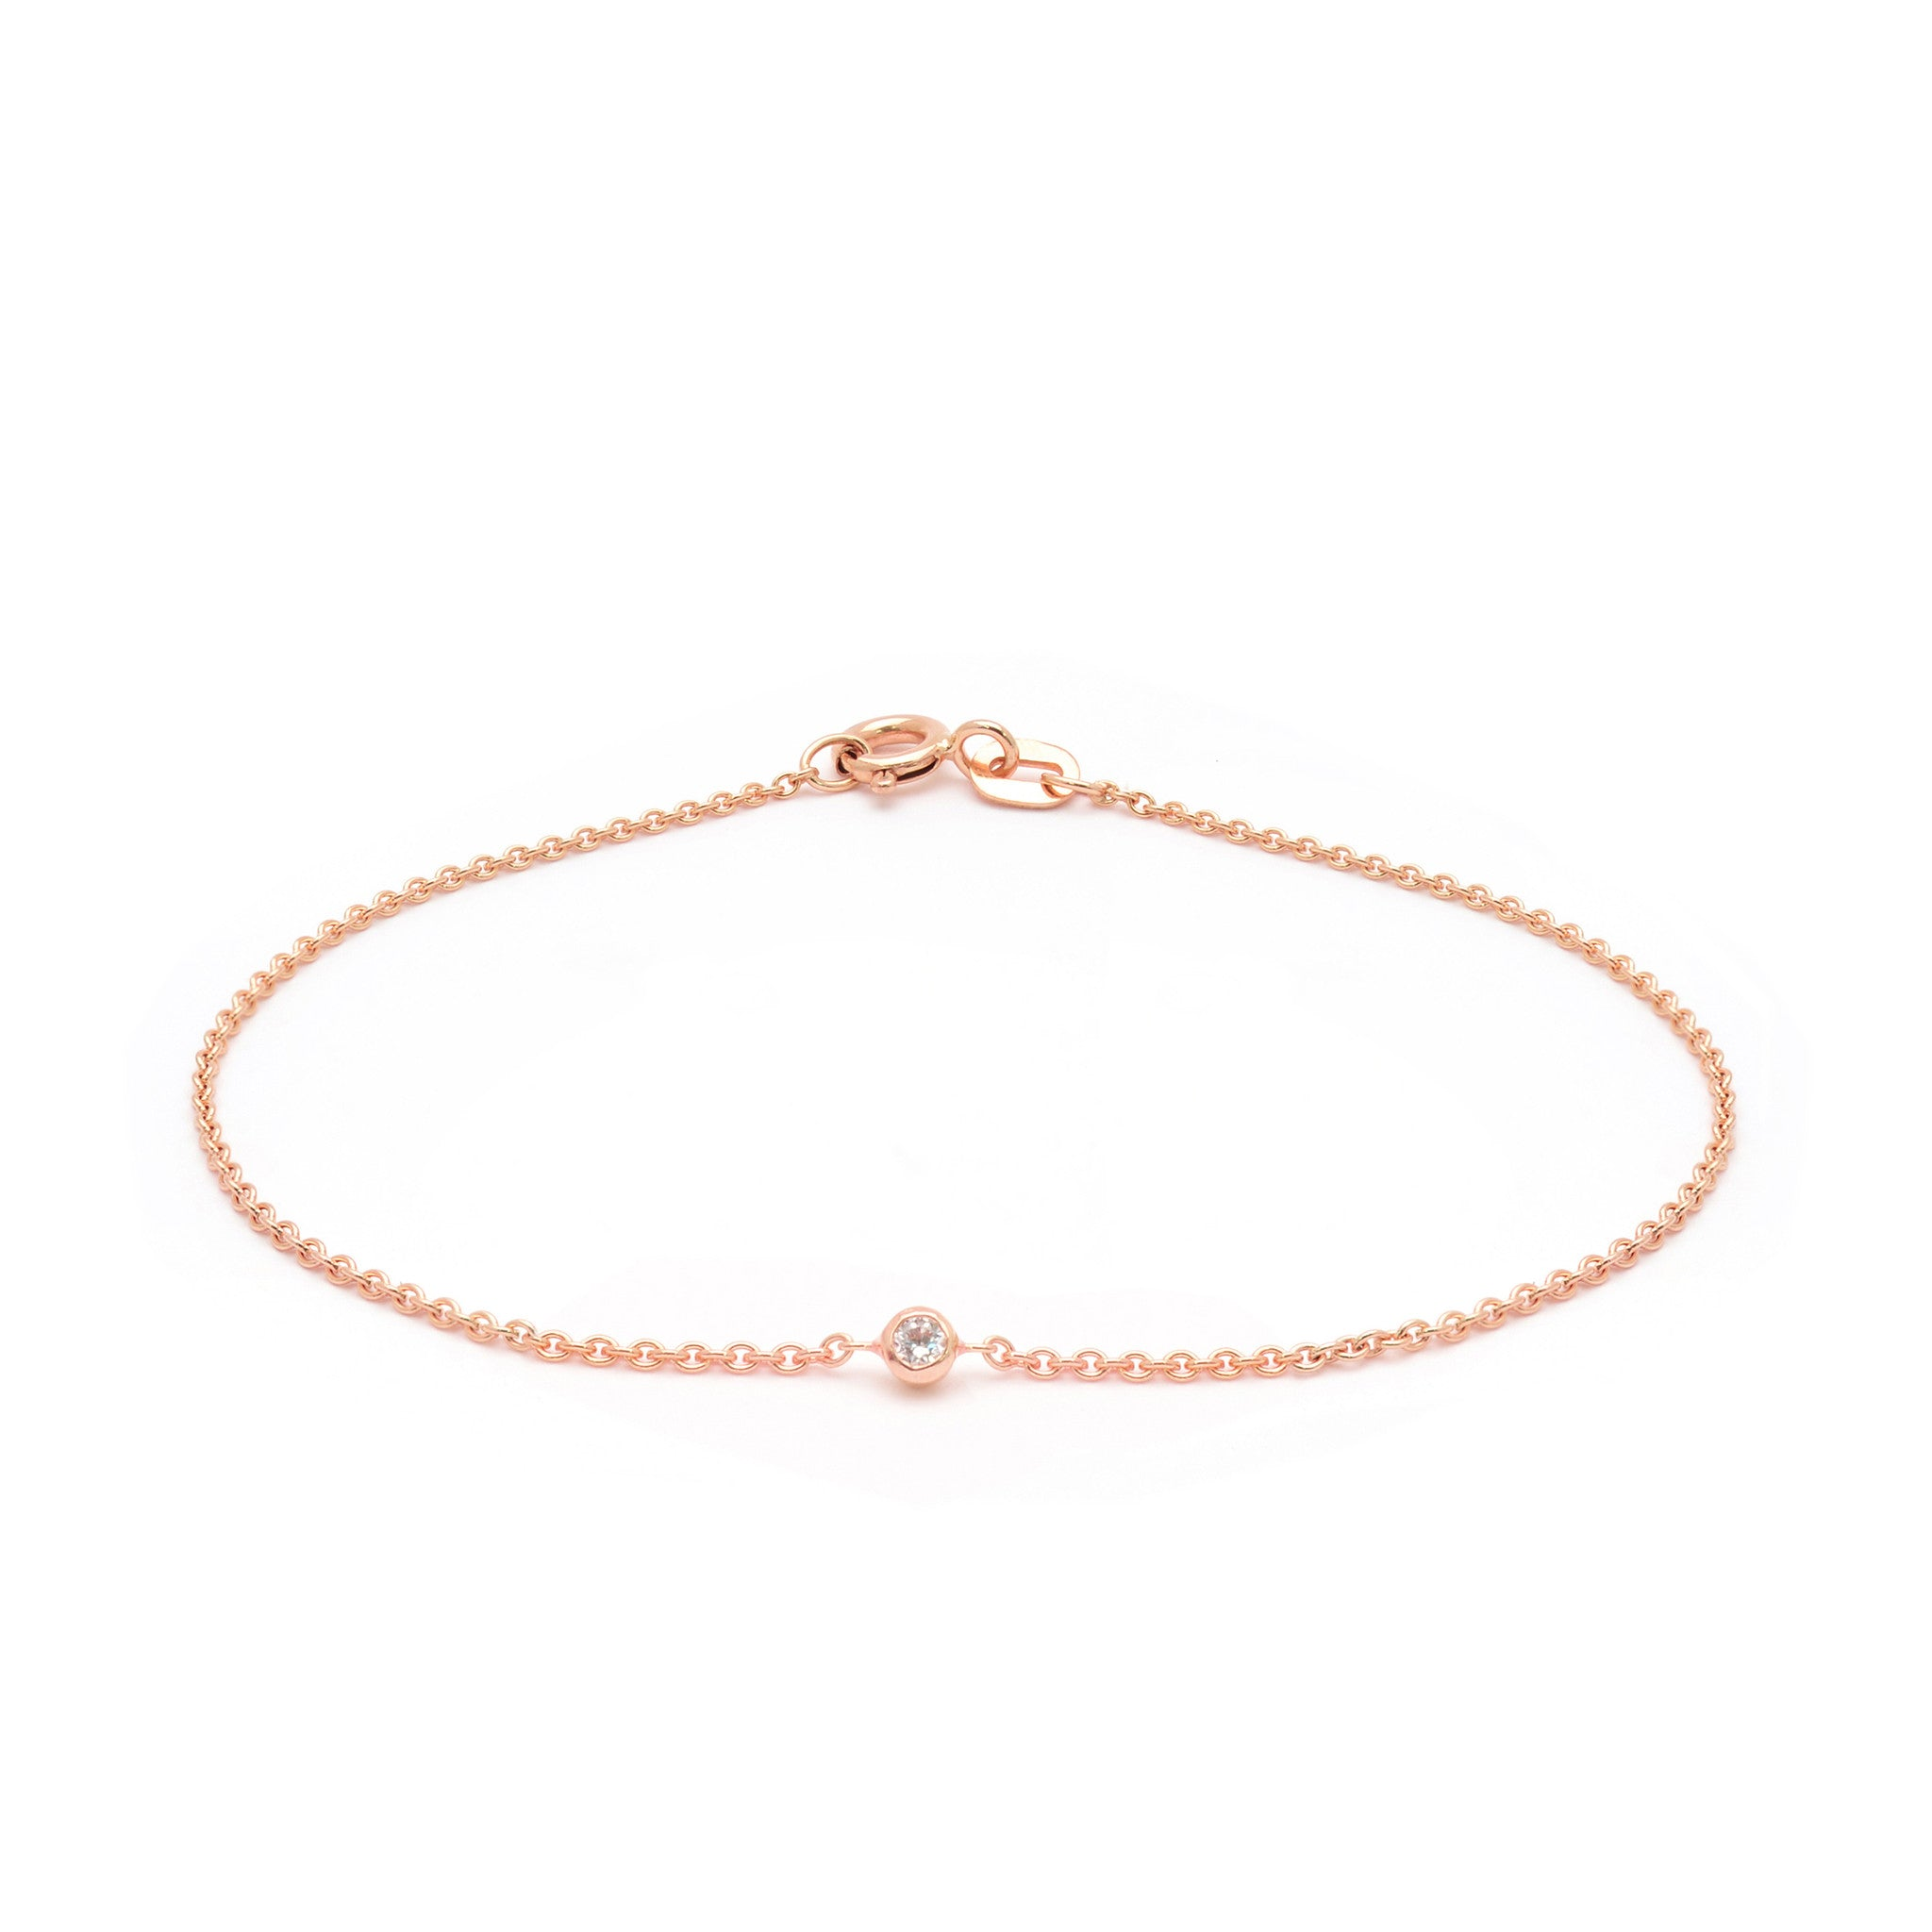 elizabeth shop arno temple bracelets inc anklet gold st clair jewelry by bracelet bruns